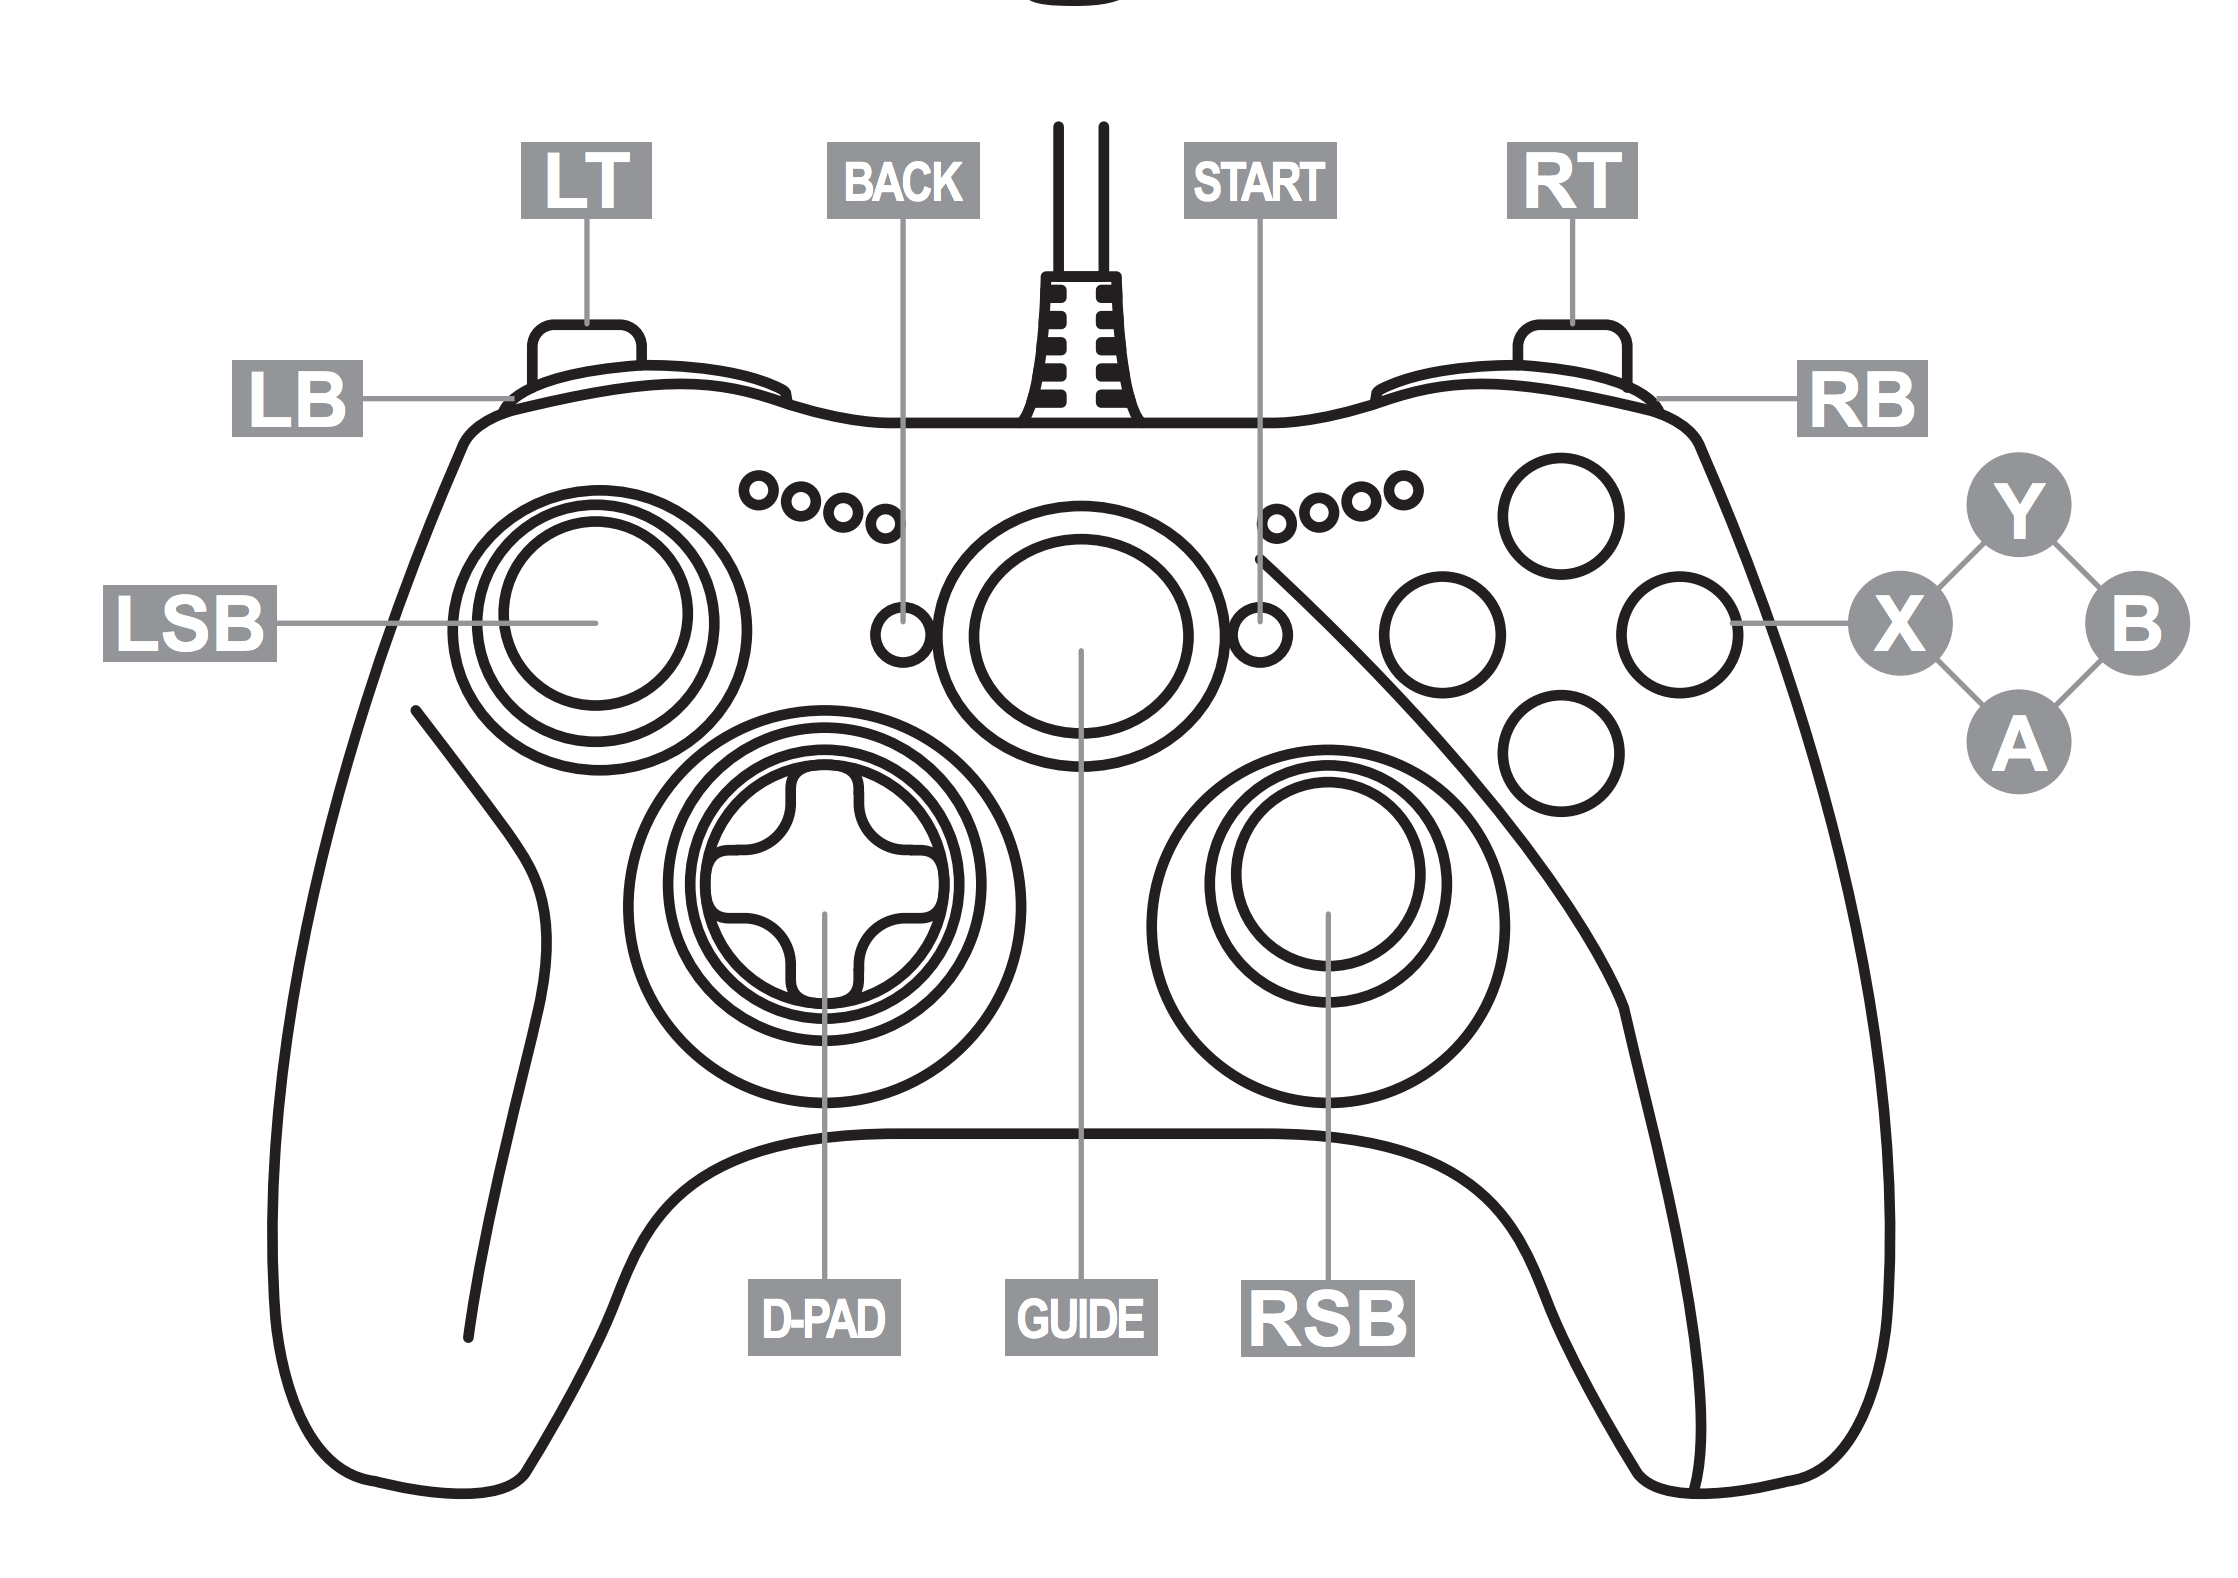 Xbox Controller Button Names And Layout Github